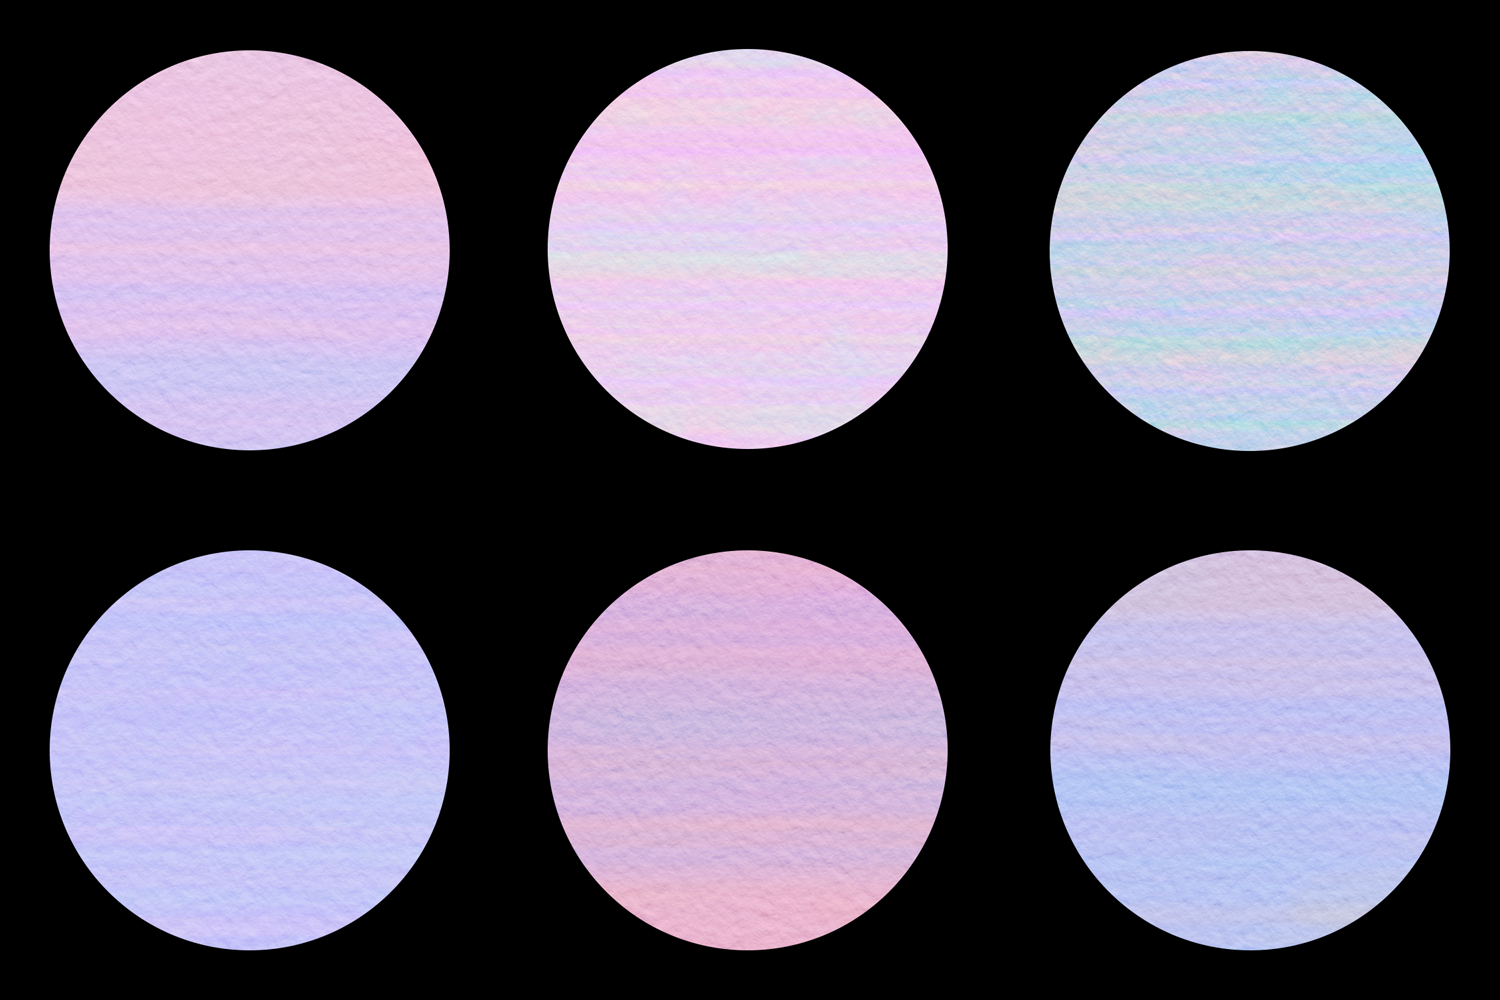 Pastel Backgrounds example image 3